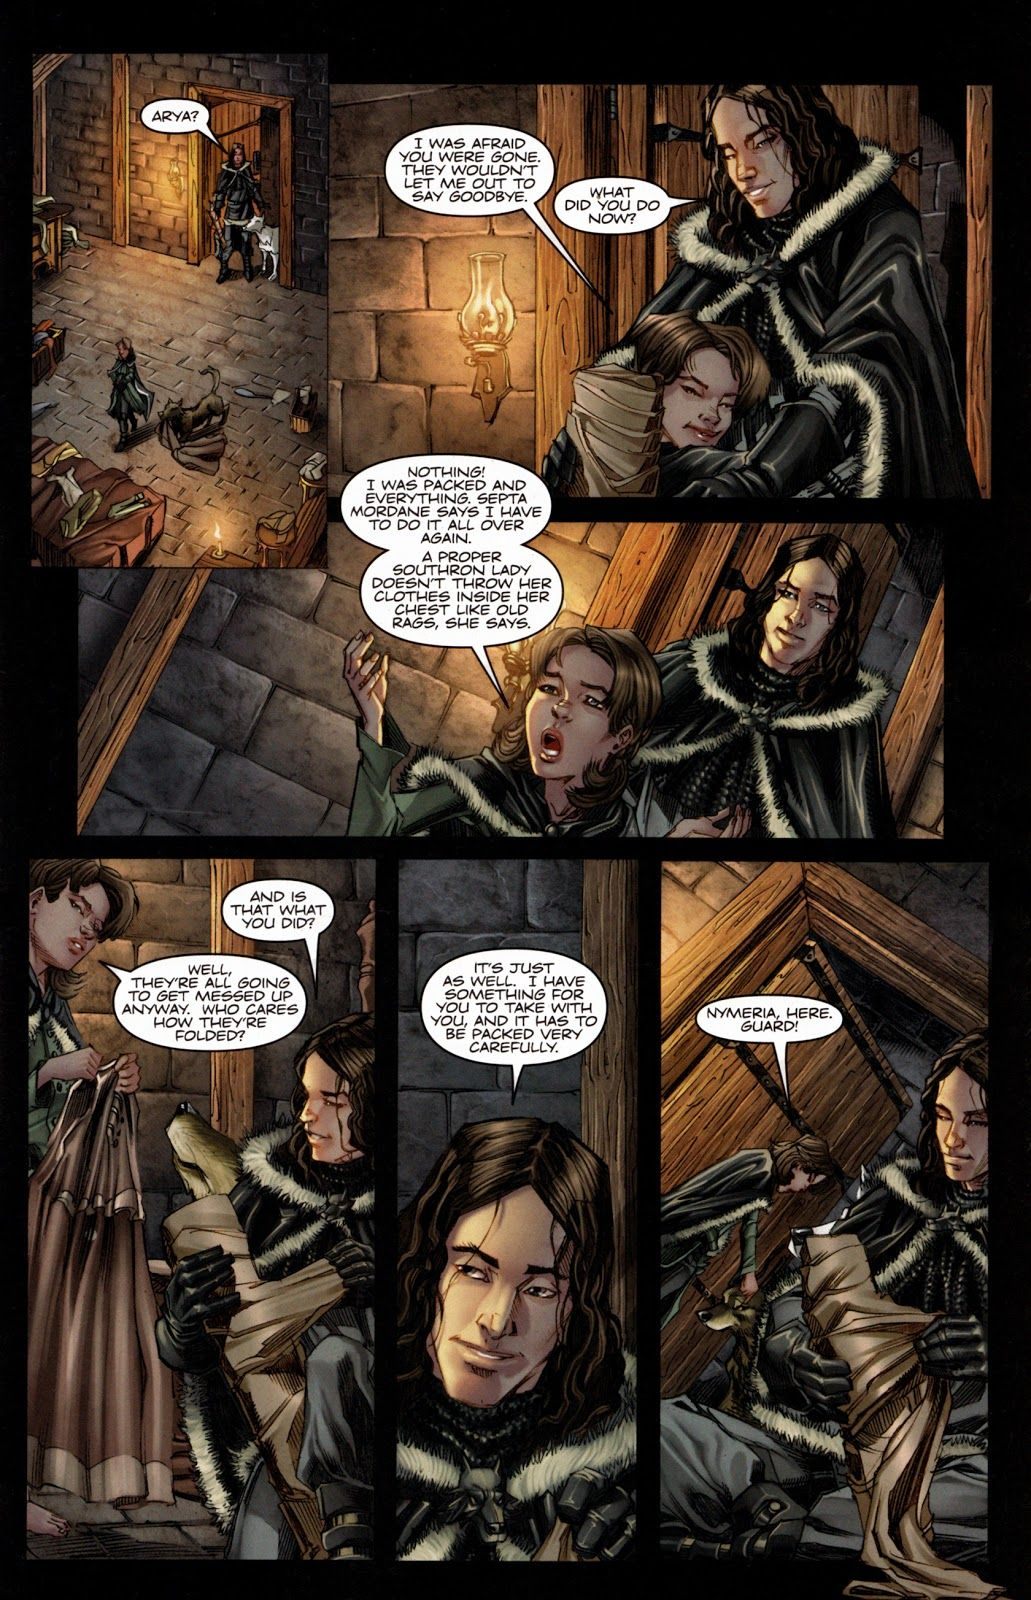 A Song Of Ice And Fire Game Of Thrones Graphic Novel Comic Georgia R R Martin Arya Stark Game Of Thrones Comic Game Of Thrones Arya Stark